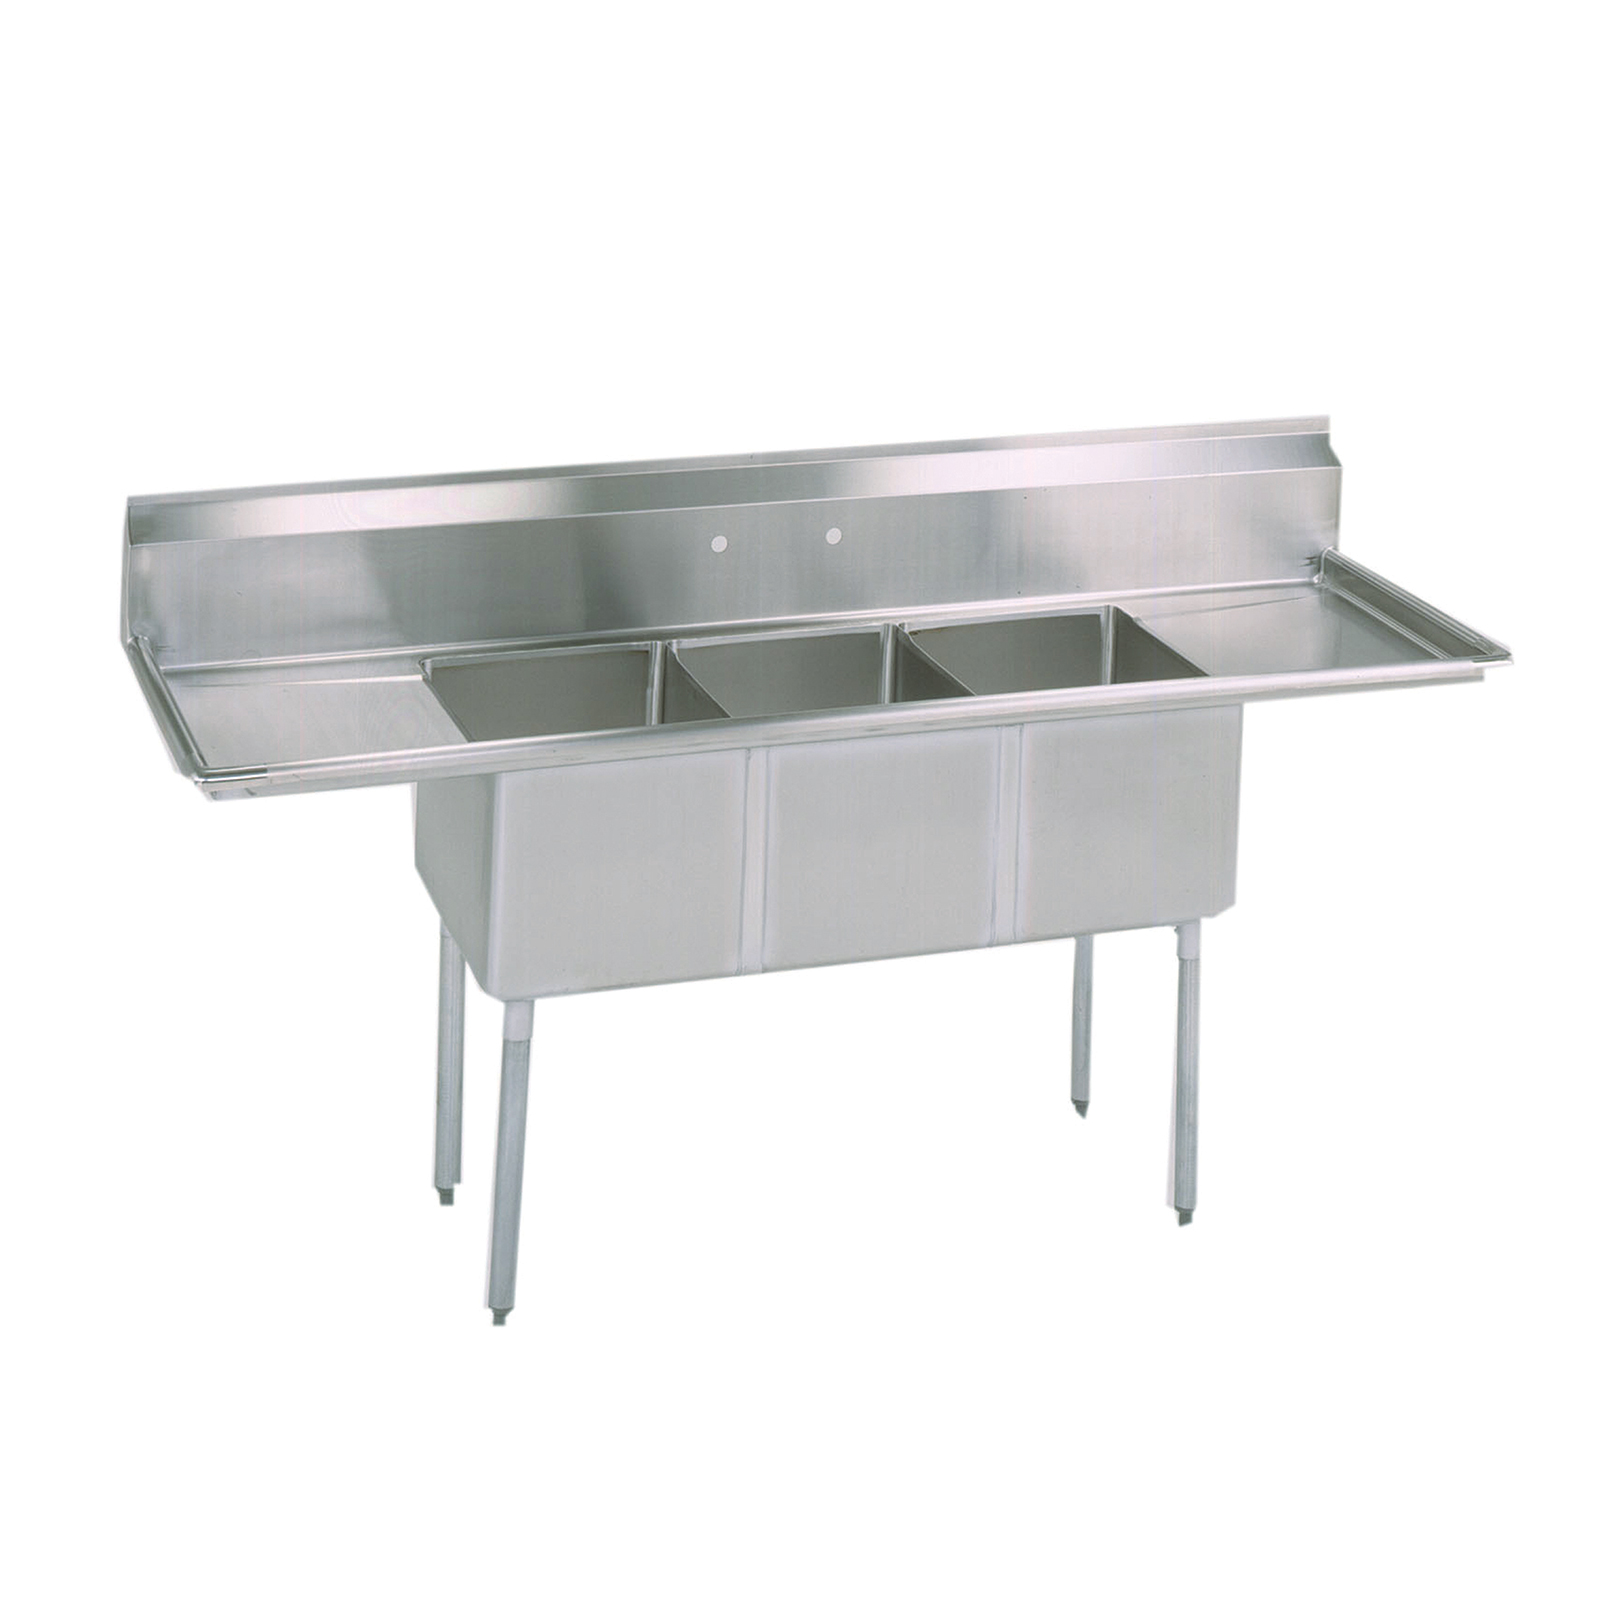 BK Resources BKS-3-18-12-18TS sink, (3) three compartment